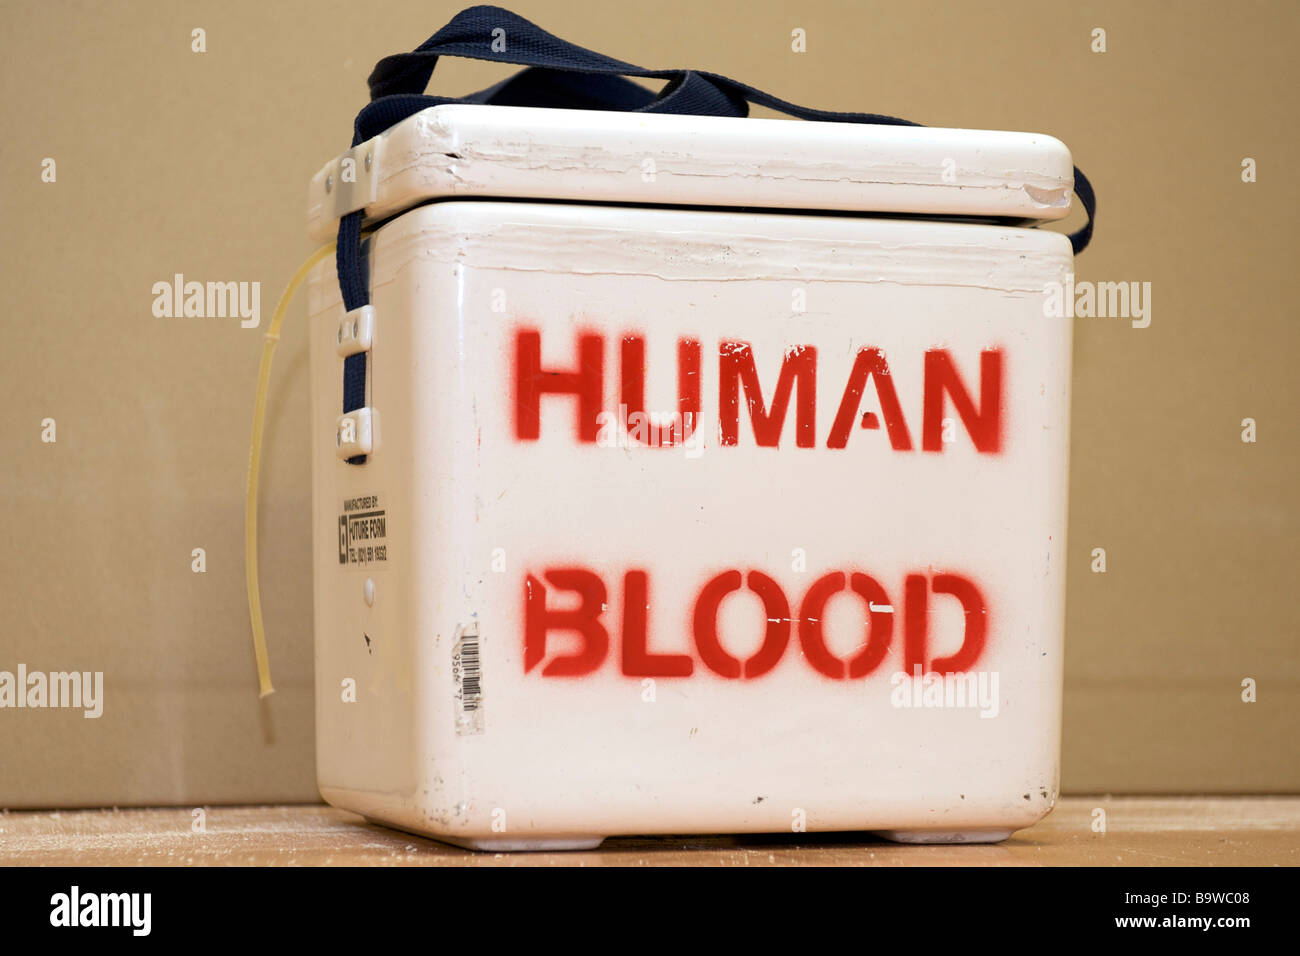 Container for human blood. - Stock Image